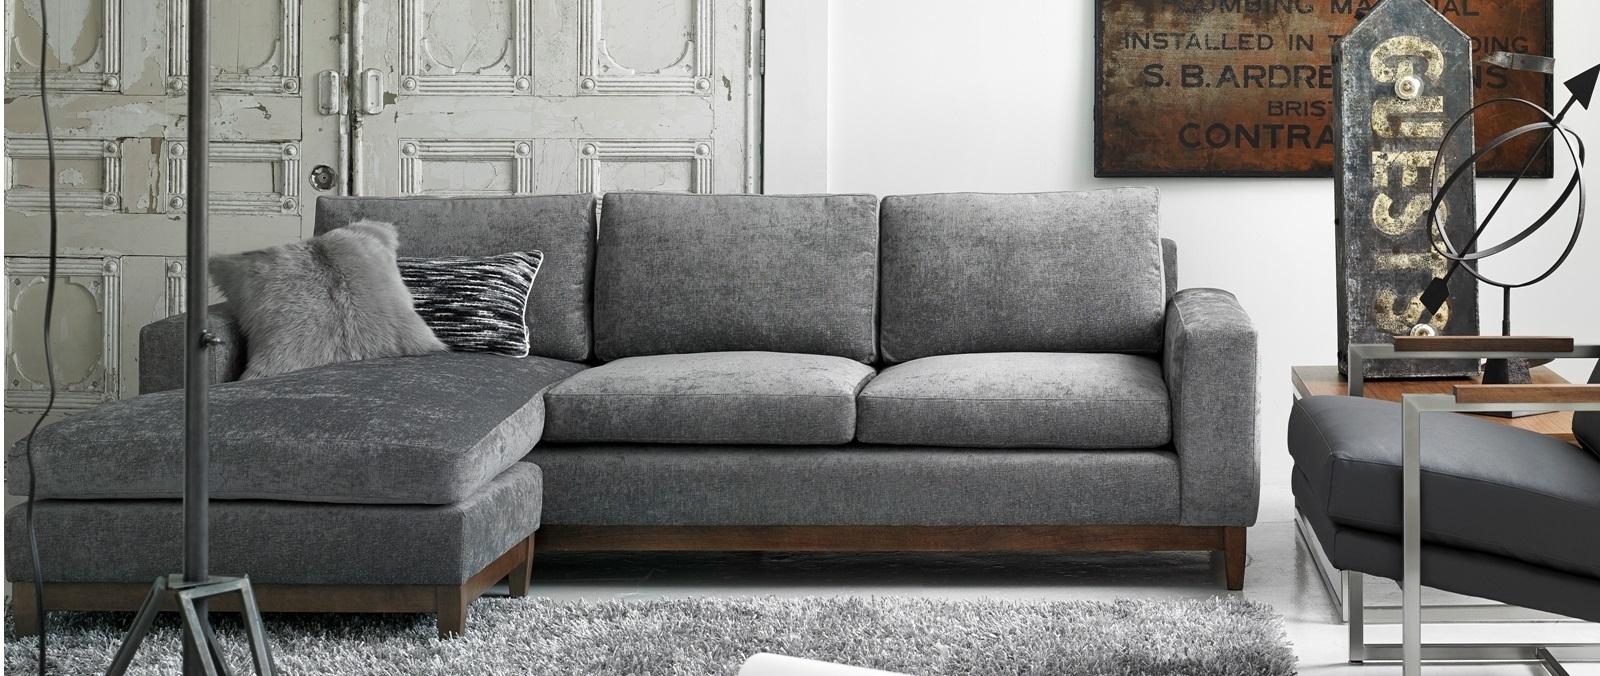 Modern Furniture Store Montreal And Ottawa | Mikazahome inside Montreal Sectional Sofas (Image 1 of 10)